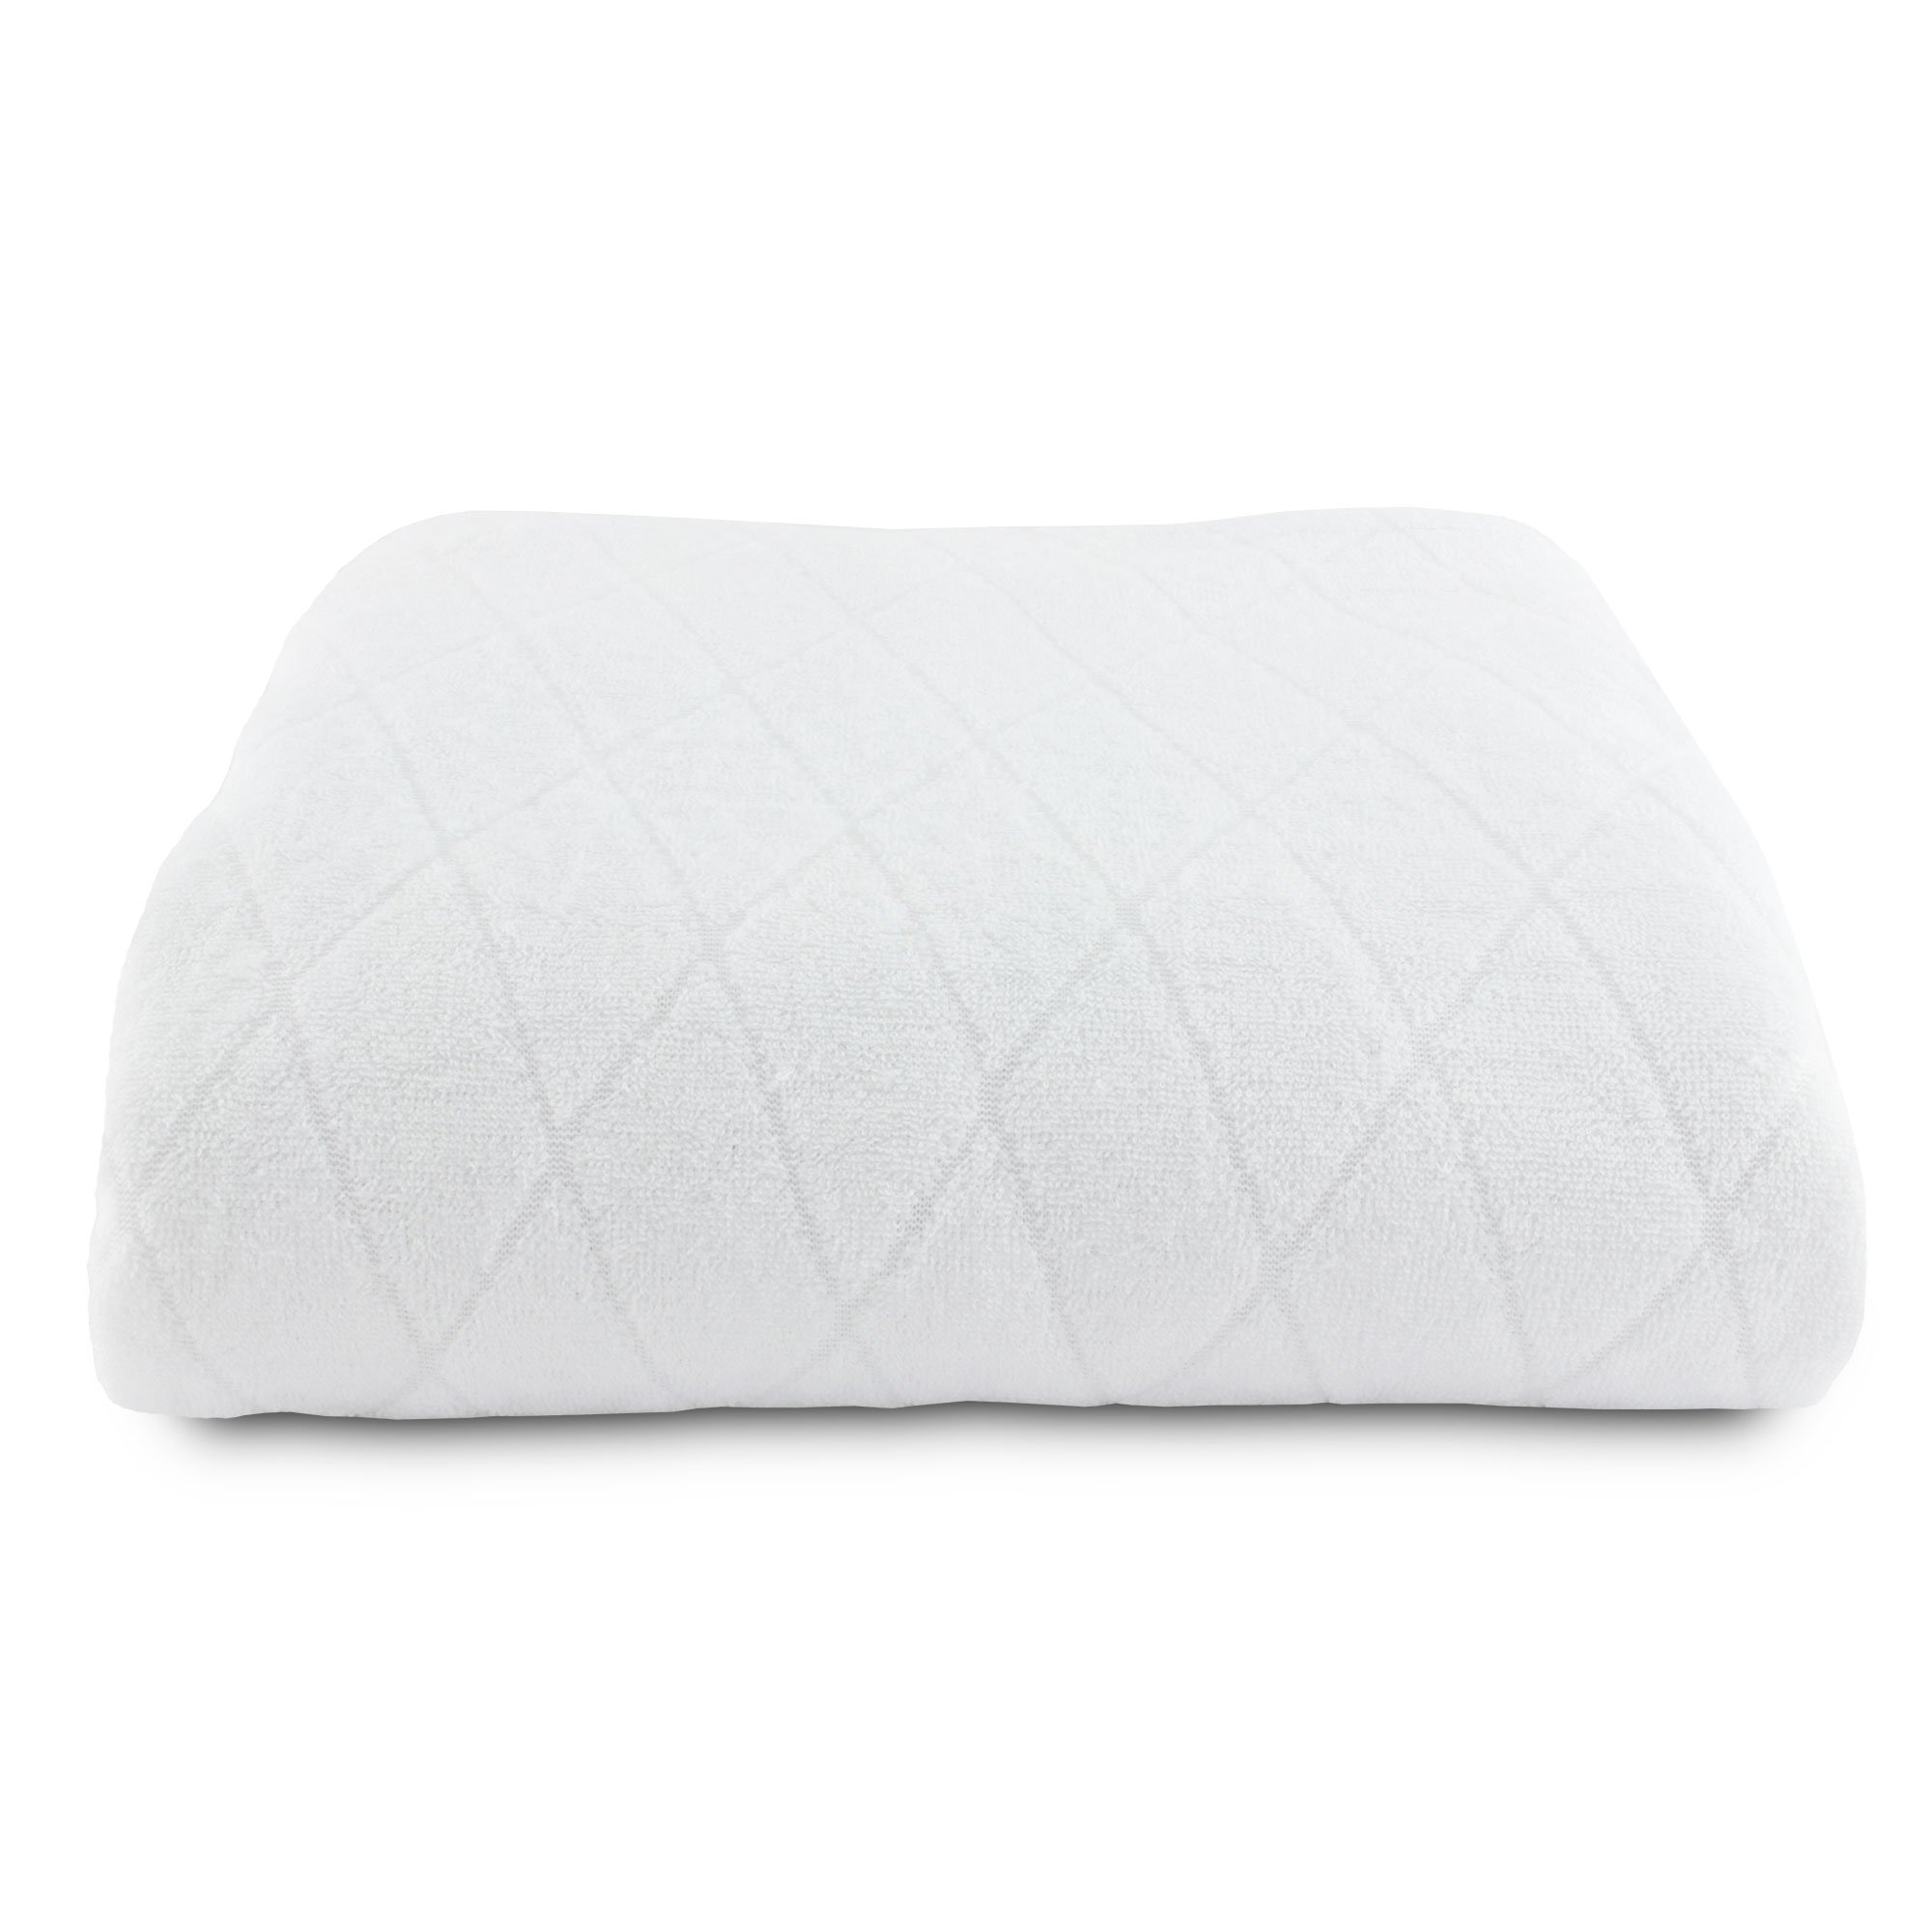 Medslant''BIG'' Wedge Pillow Cover for the Medslant BIG Wedge Pillow Only by MedSlant